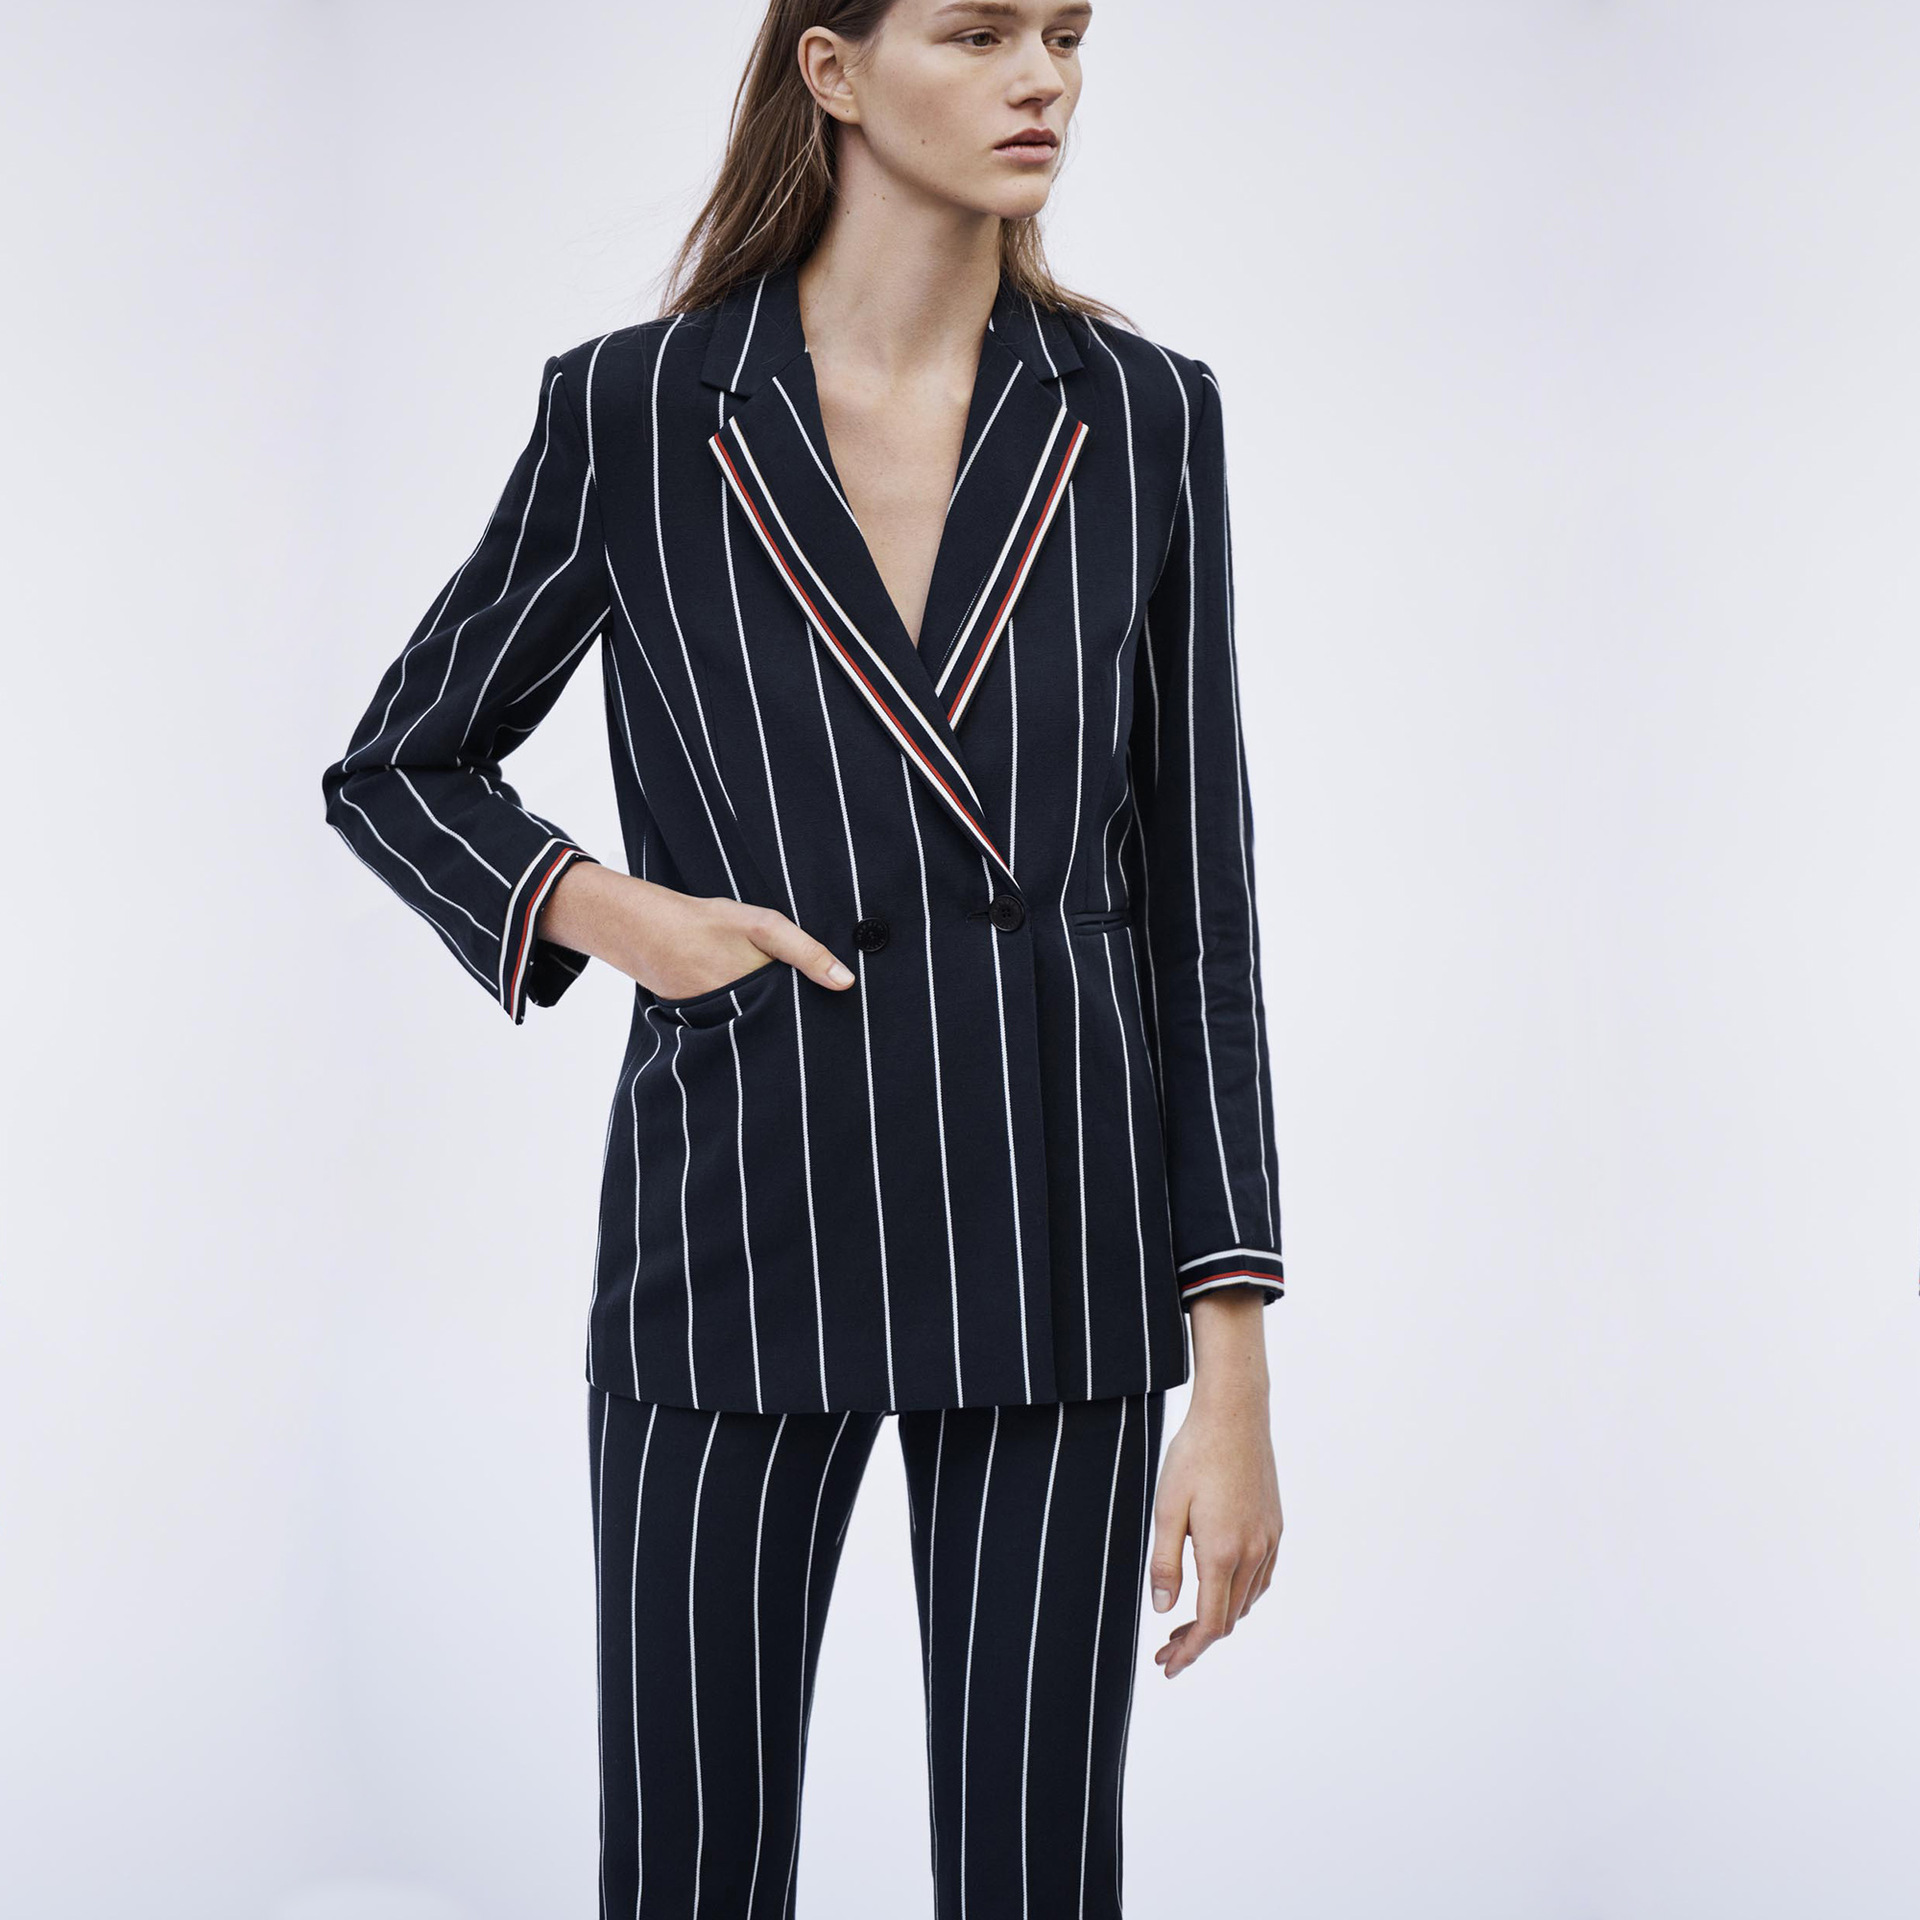 Women Suit 2019 Spring and Summer New Color Contrast Striped Commuter Lady Suit